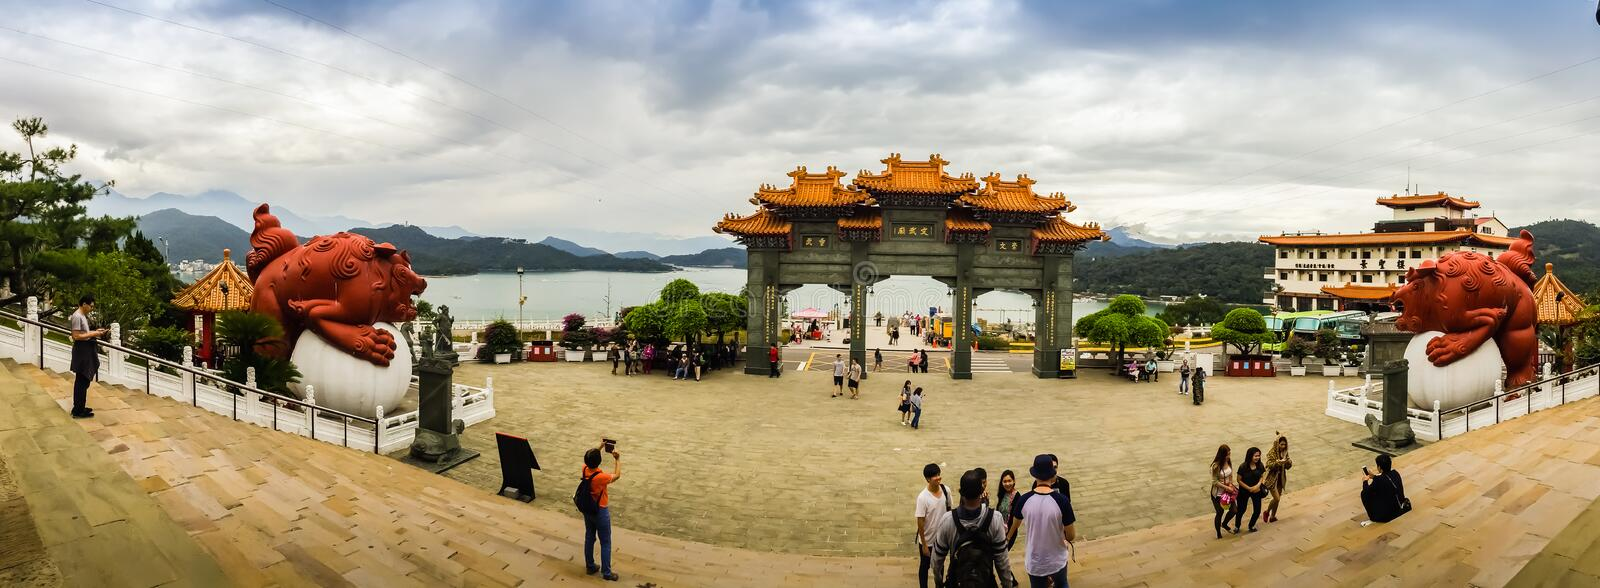 Nantou, Taiwan - November 21, 2015: Tourist visited the beautiful of Sun Moon Lake Wen Wu Temple nearby Sun Moon Lake in Yuchi To stock photos